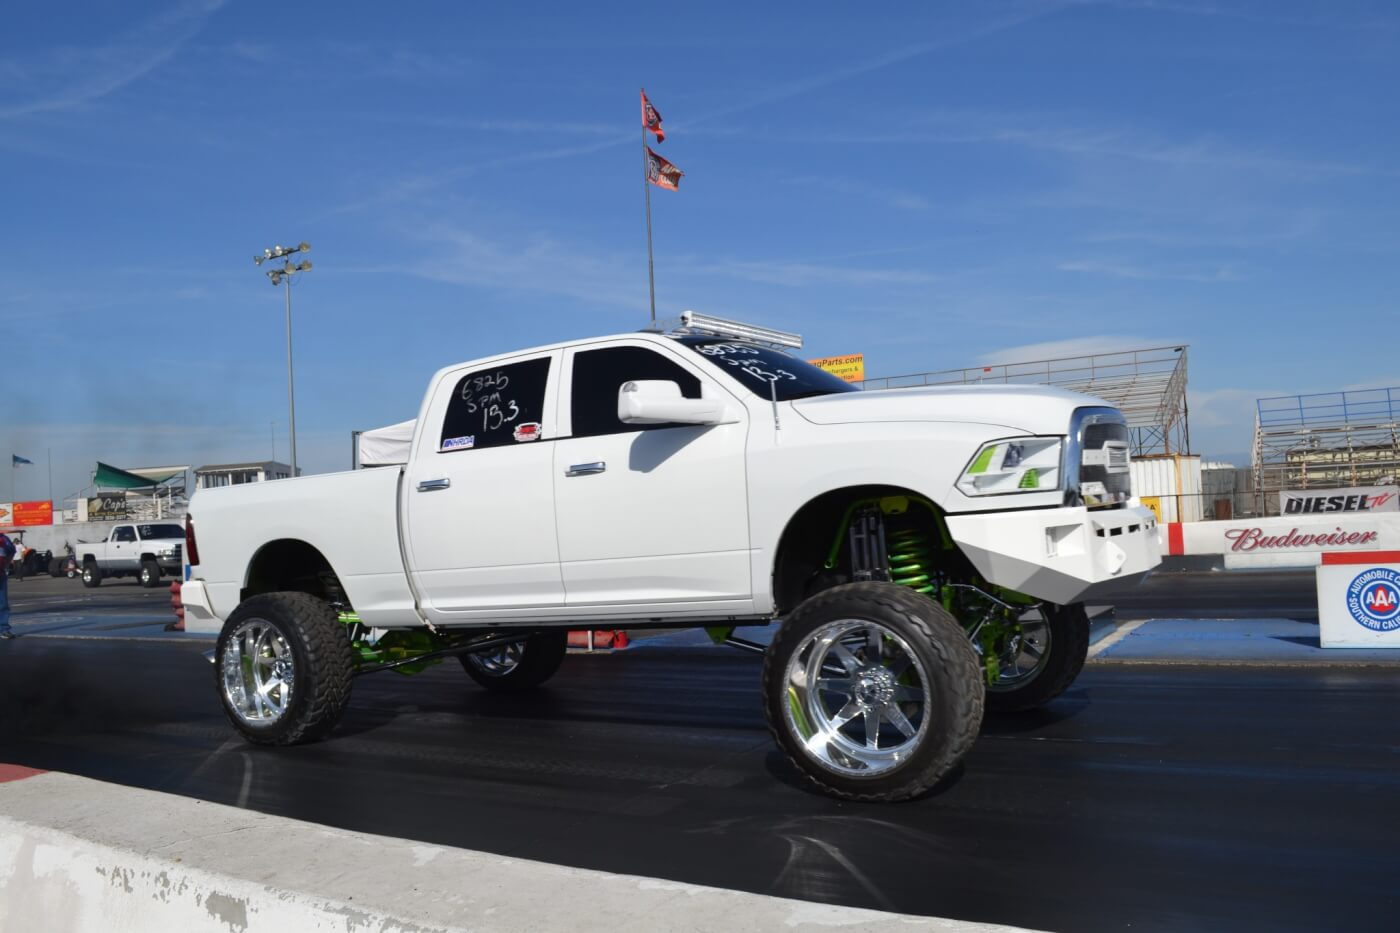 At the track, Joey's Ram rockets off the line with 1.8-second 60-foot times thanks to the 4.88 gears. Despite the heft, aerodynamic resistance, and rotating weight, the truck regularly clicks off mid '13s at the drag strip (with barely any smoke).